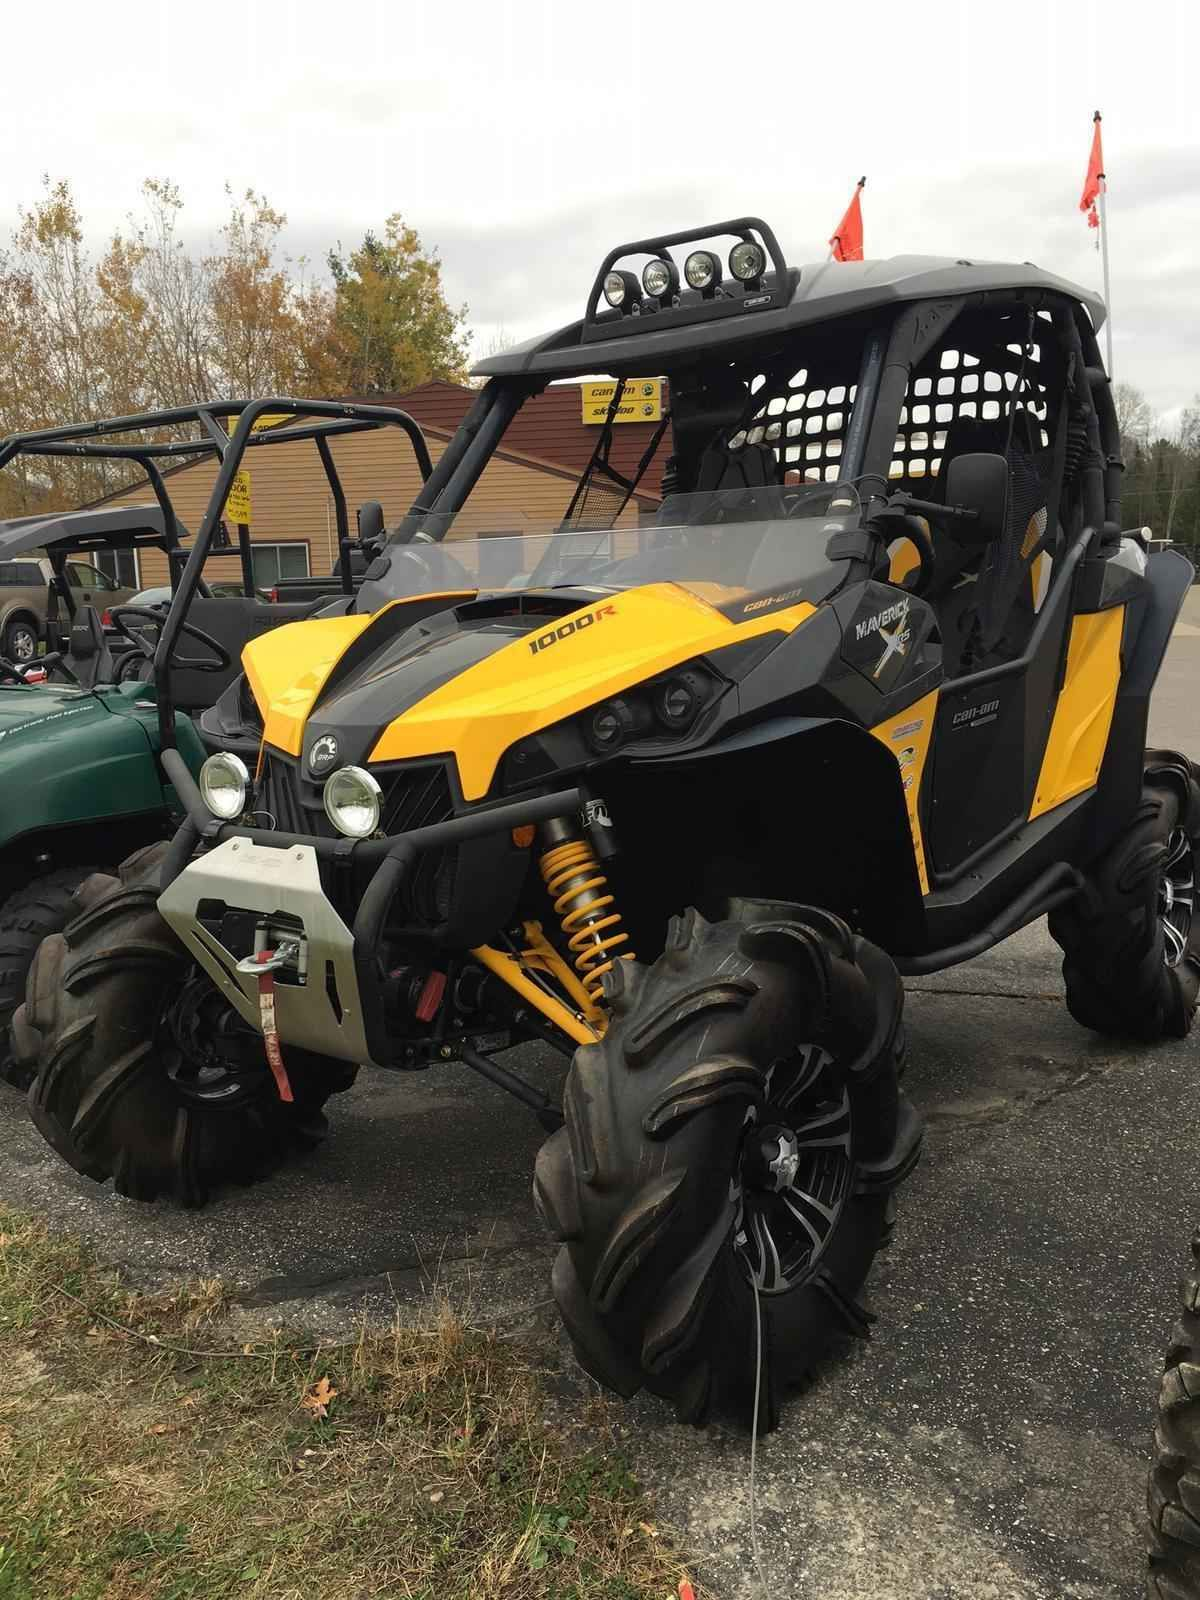 Used 2014 can am maverick 1000 xrs atvs for sale in minnesota 2014 can